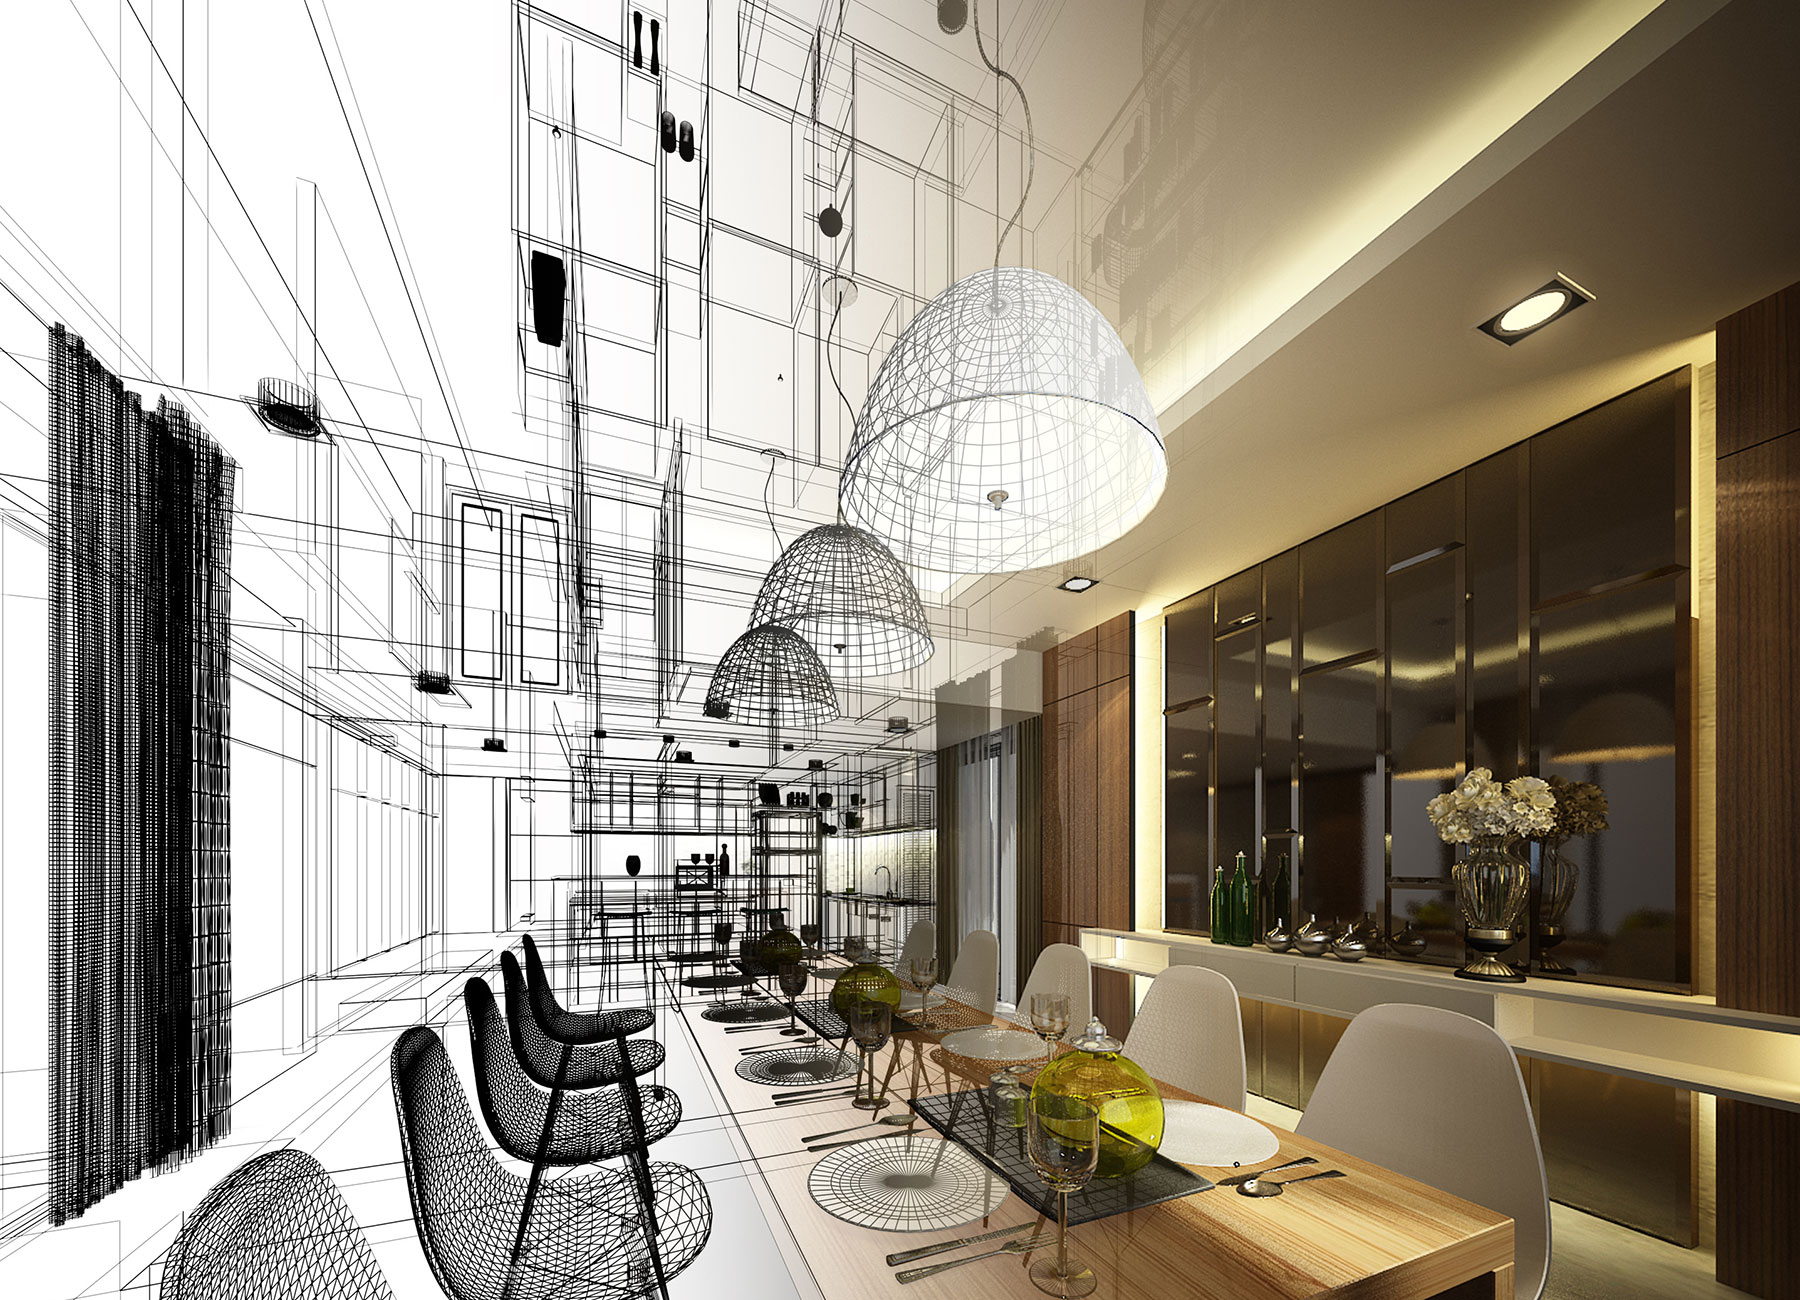 Design Interieur Concept Luxury Interior Design For Commercial Interiors By